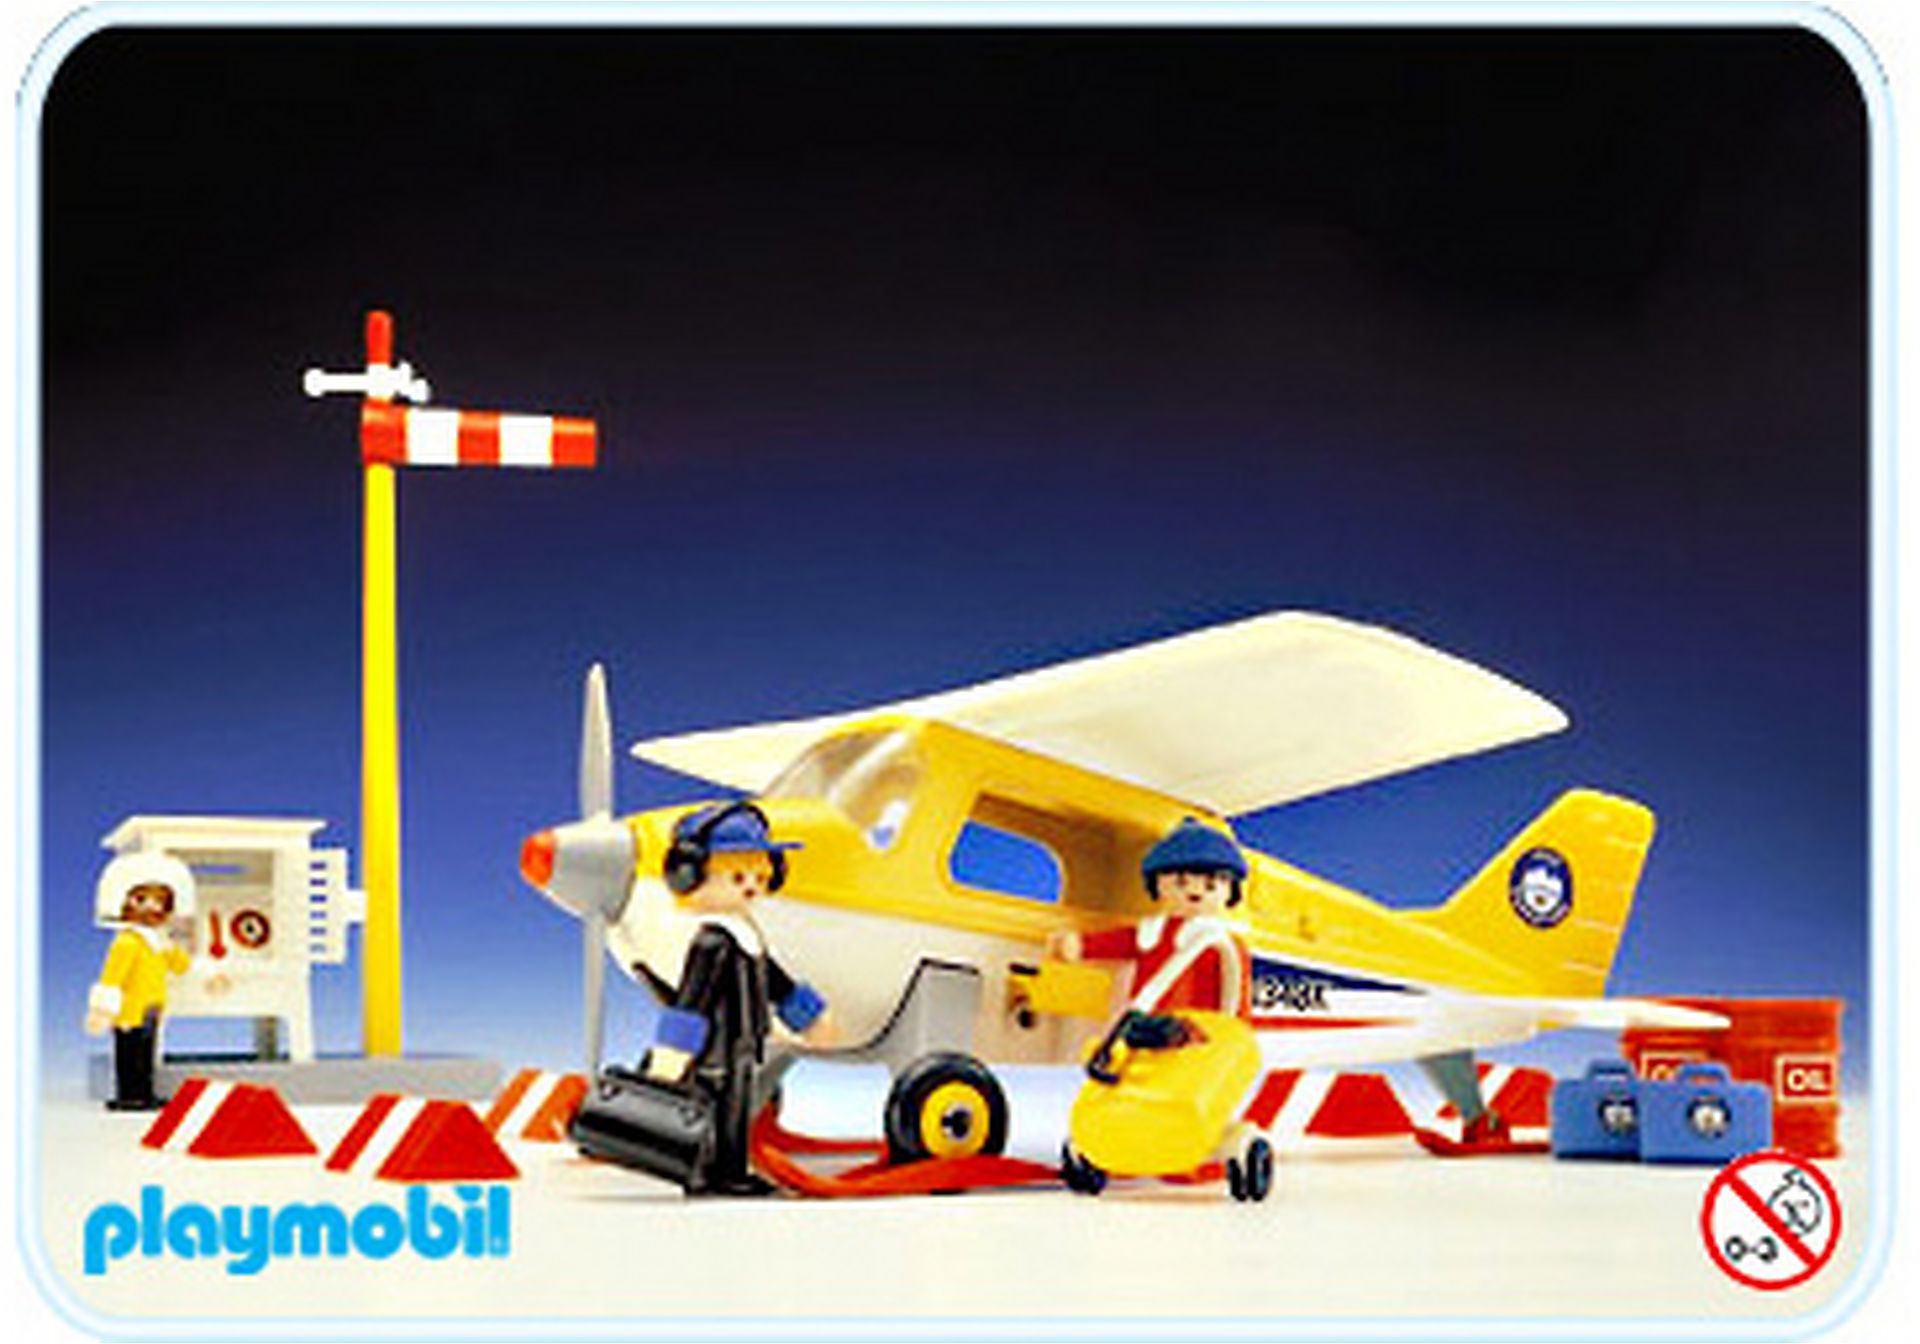 http://media.playmobil.com/i/playmobil/3457-A_product_detail/Flugzeug/Wetterstation